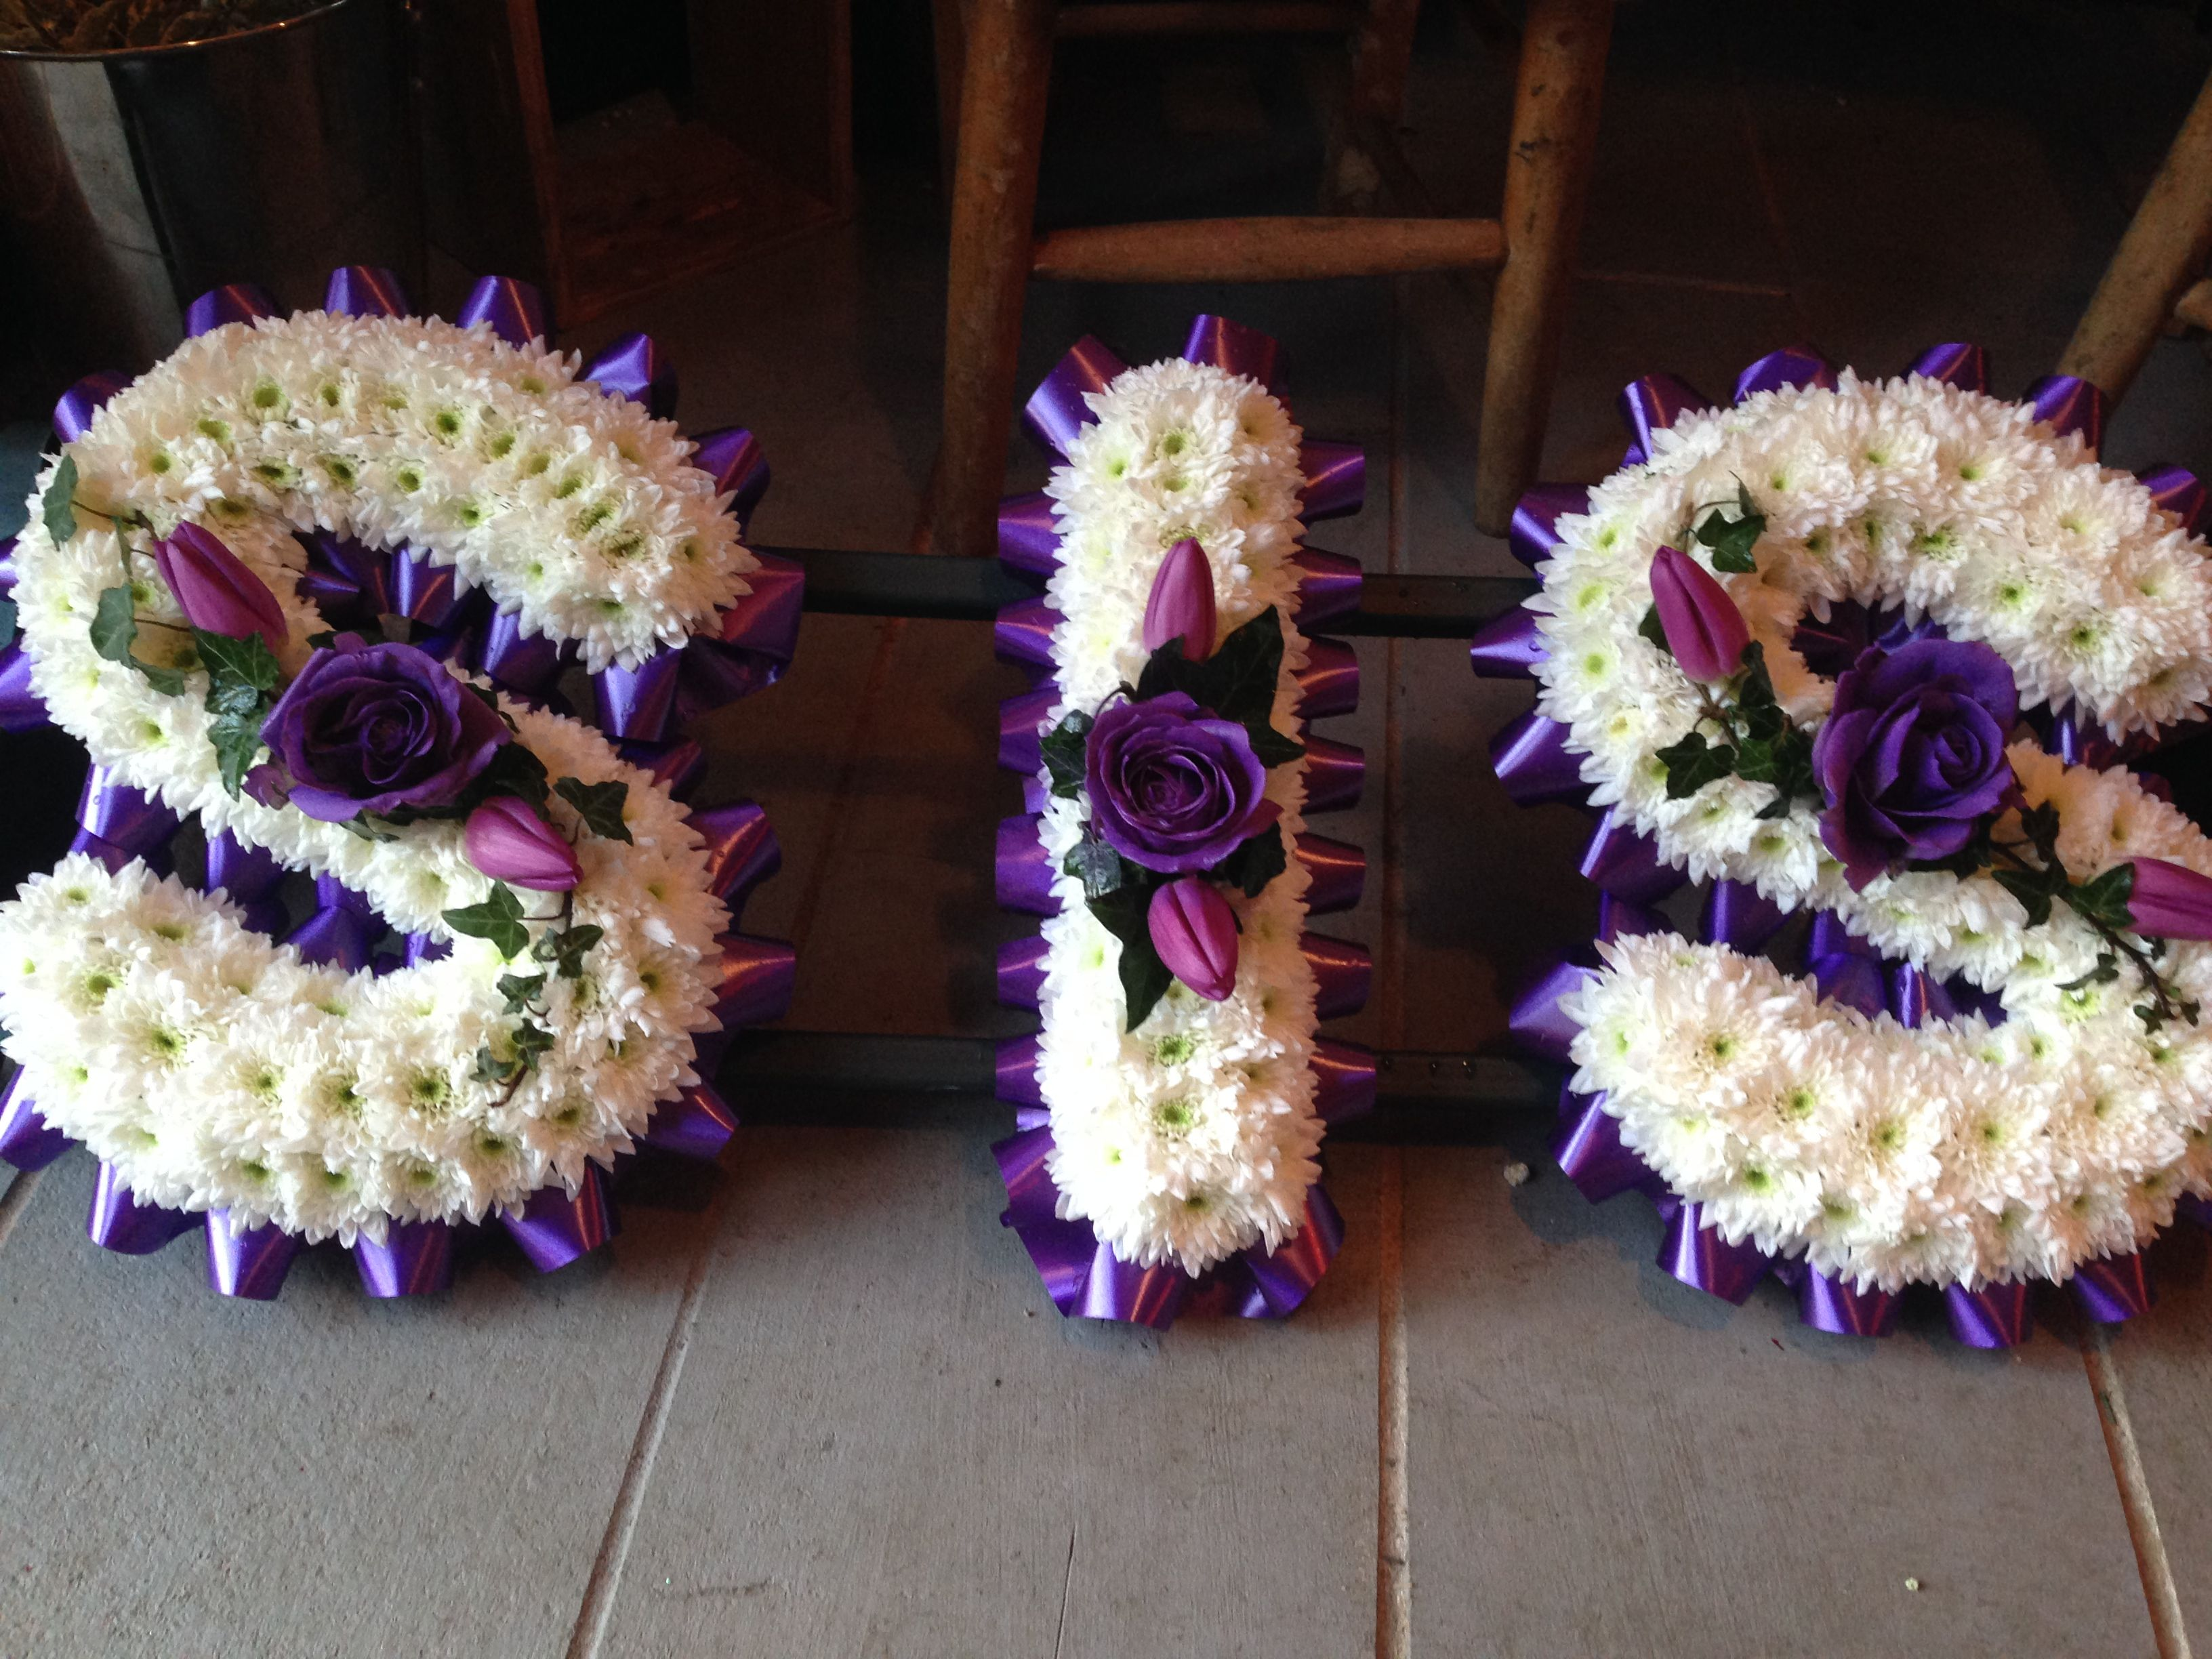 Funeral flowers sis funeral flower letter tribute cadbury purple funeral flowers sis funeral flower letter tribute cadbury purple and white stunning funeral izmirmasajfo Choice Image